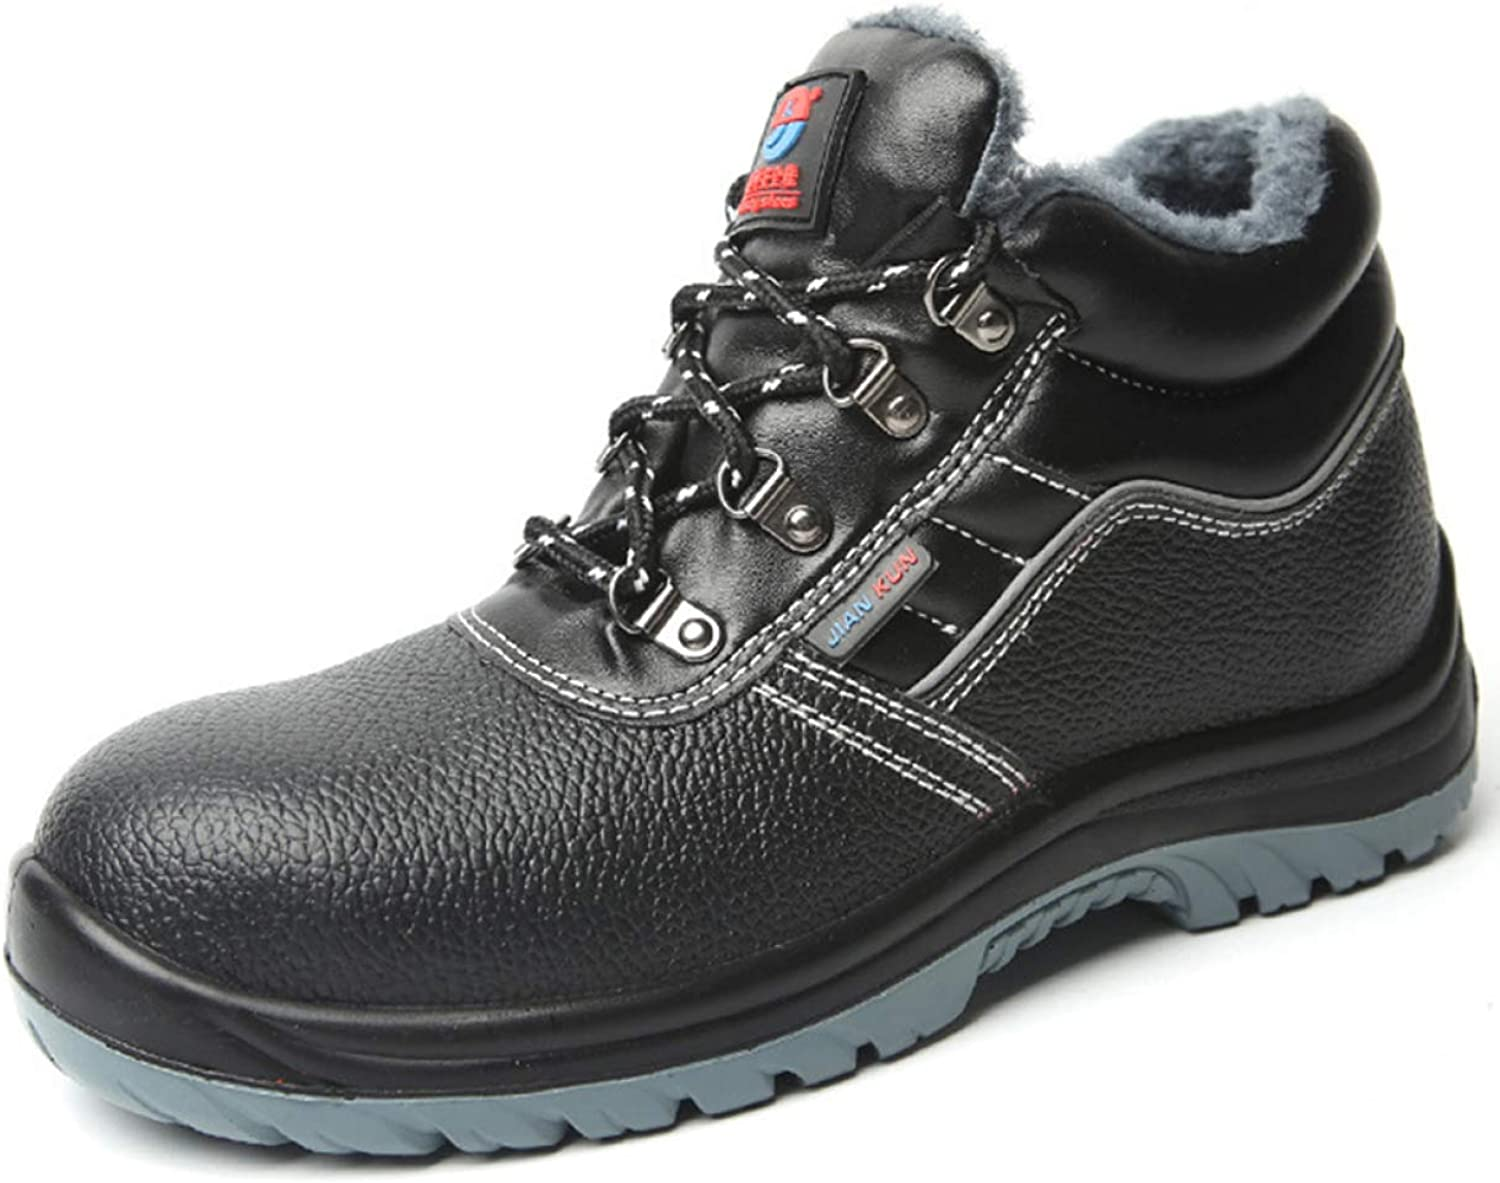 RSHENG shoes For Men's Steel Toe Work Boots Warm Lining Ankle Boots Puncture Proof Safety shoes